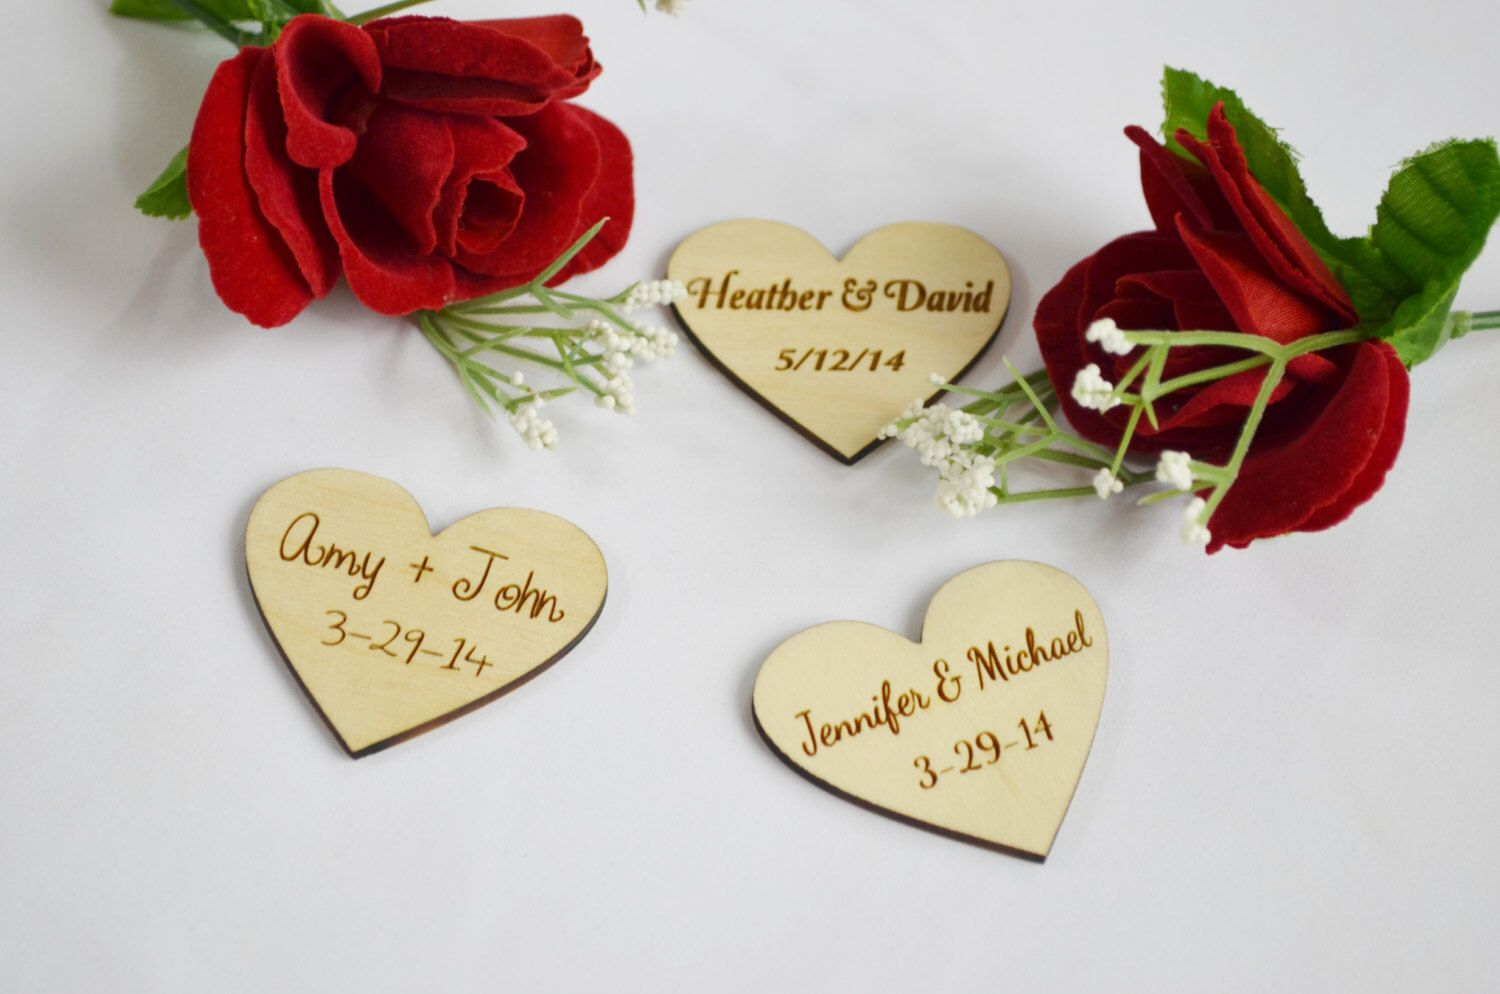 Personalized Wooden Hearts, Wedding Favors, engraved wood shapes ...